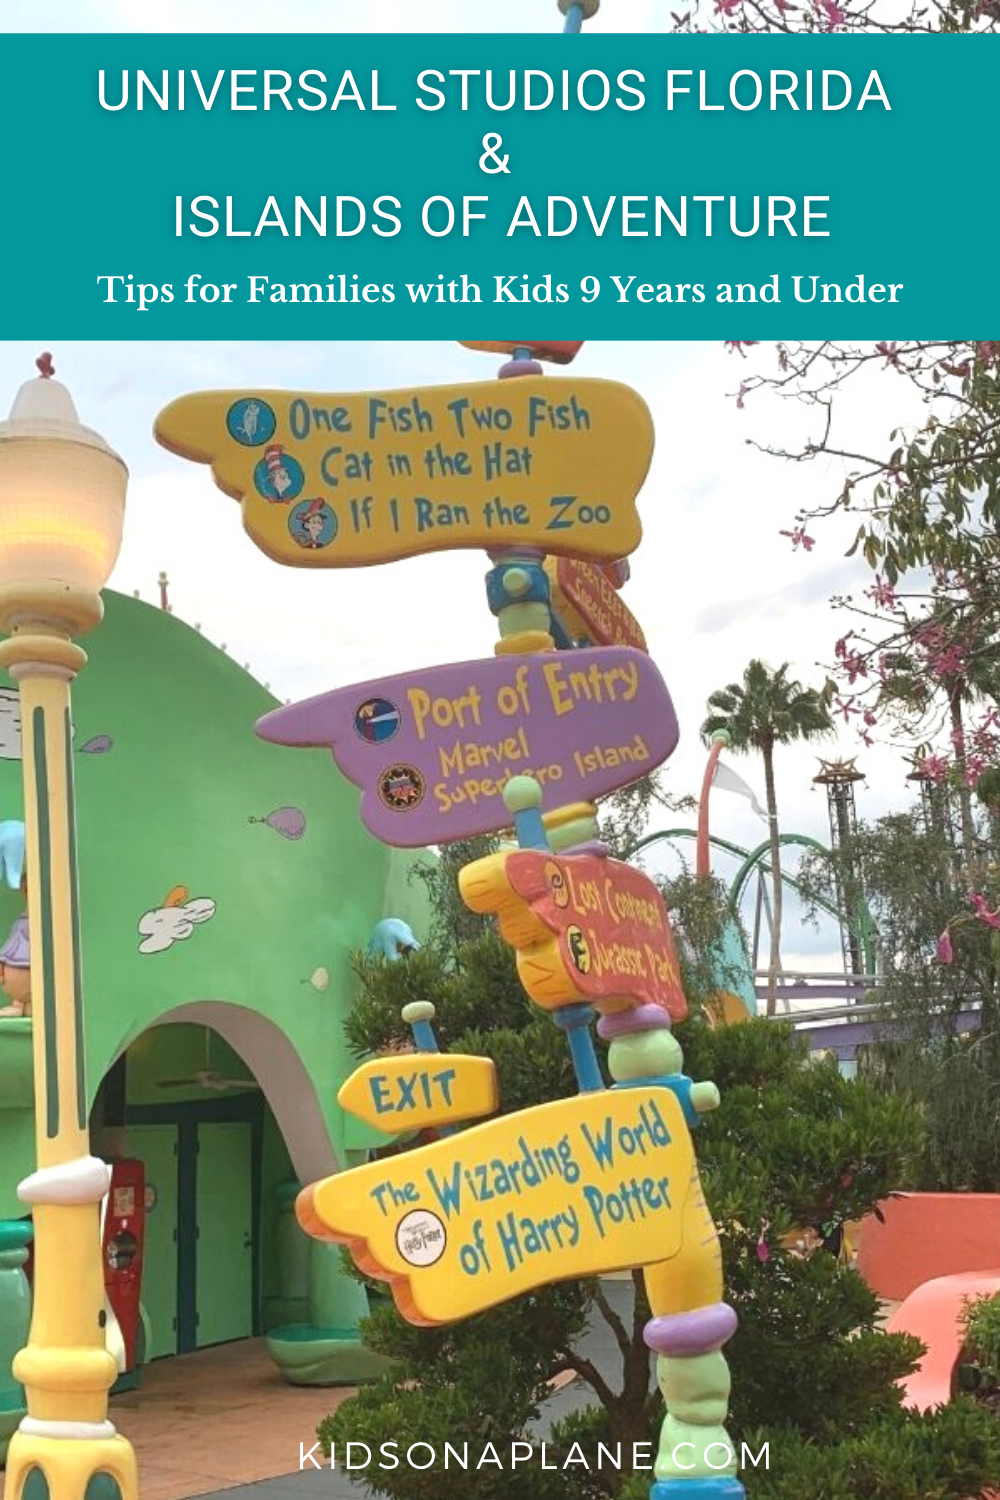 Universal Studios Florida and Islands of Adventure Travel Tips - Best things to do with kids 9 and under